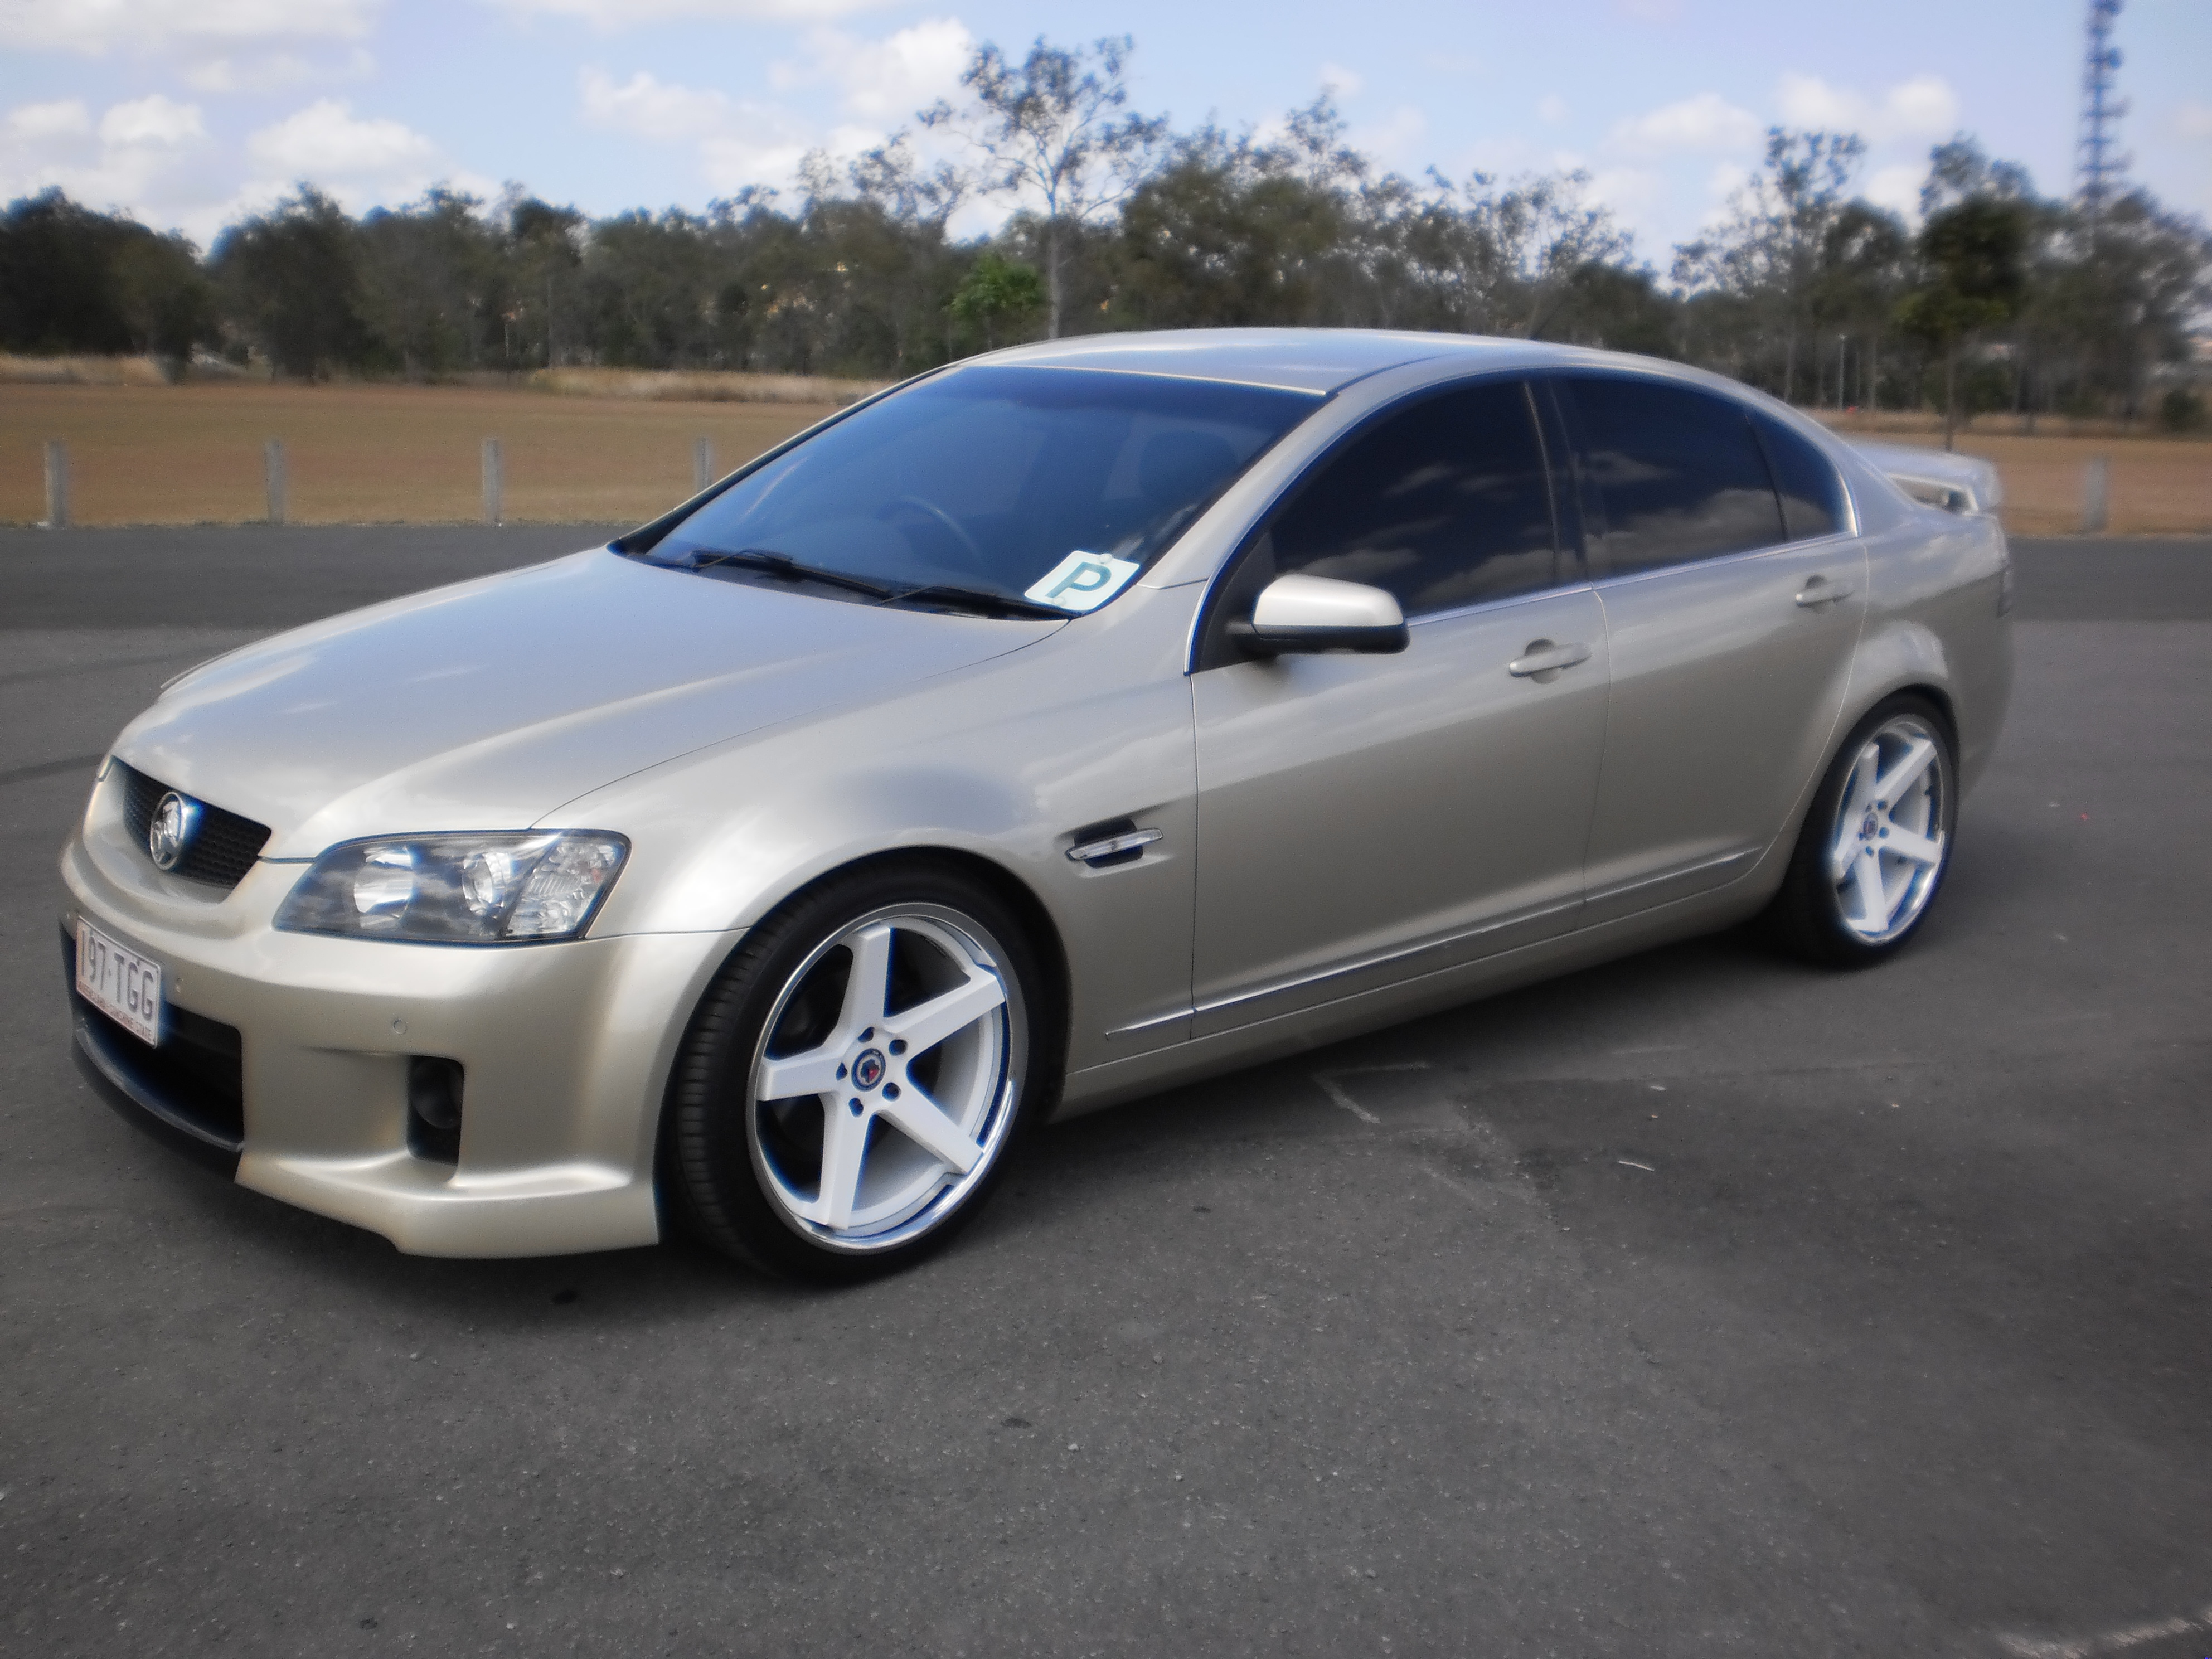 2006 Holden Calais V Ve Car Sales Qld Ipswich